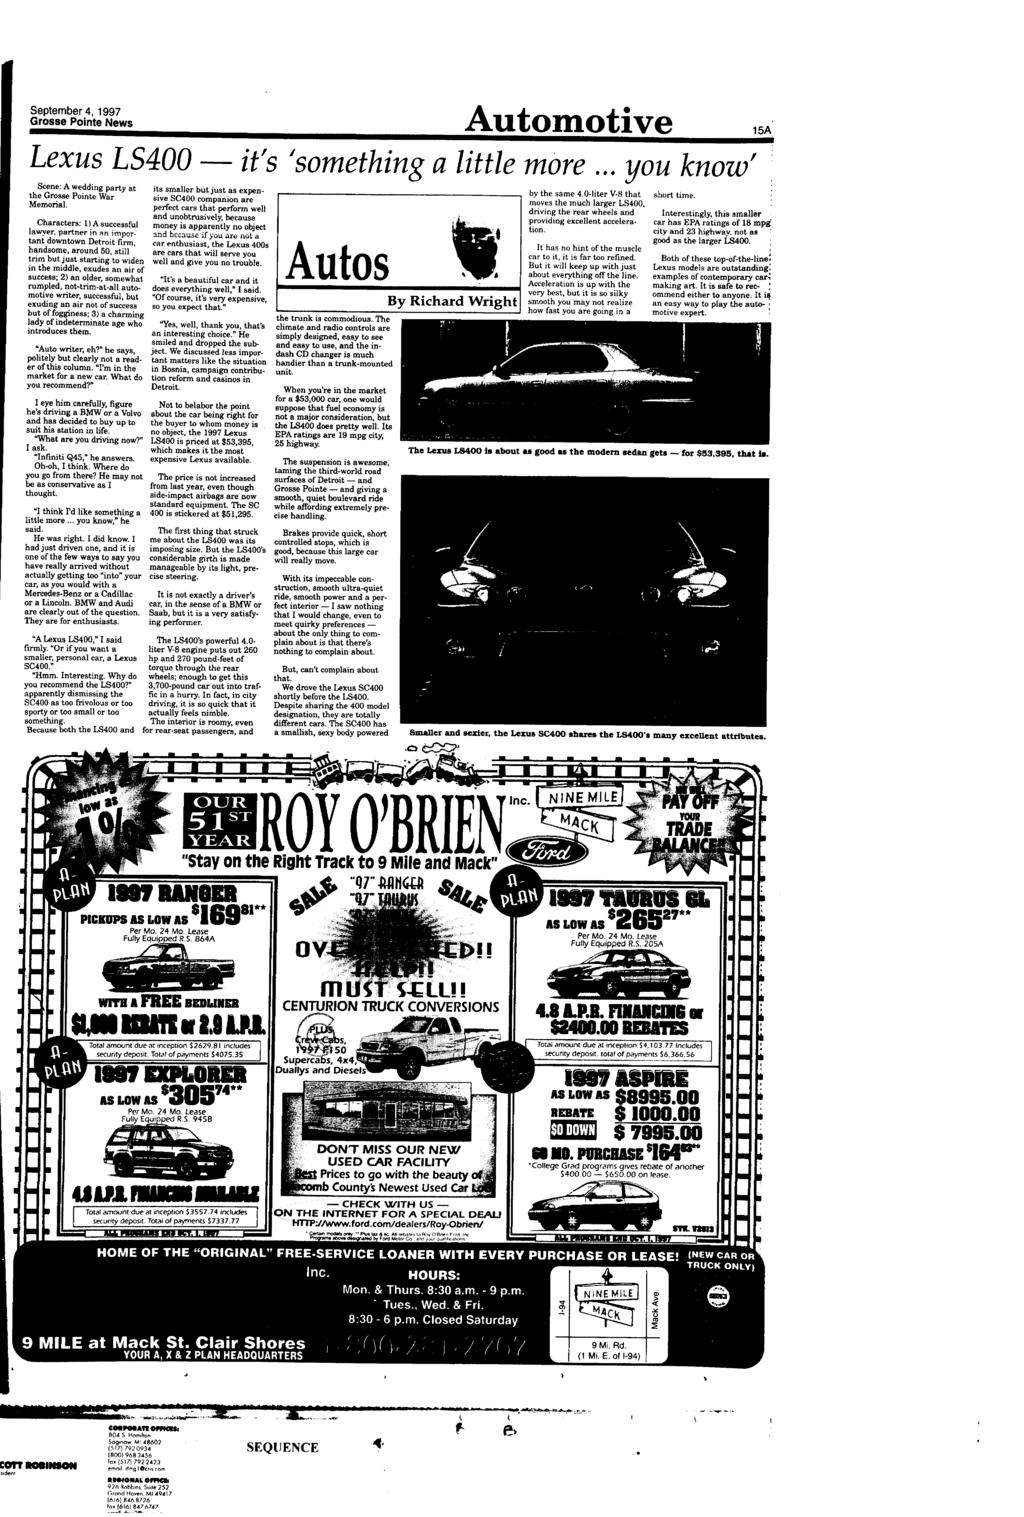 September 4, 1997 Grosse Pointe News Lexus L5400   Scene A Weddmg Party At  The